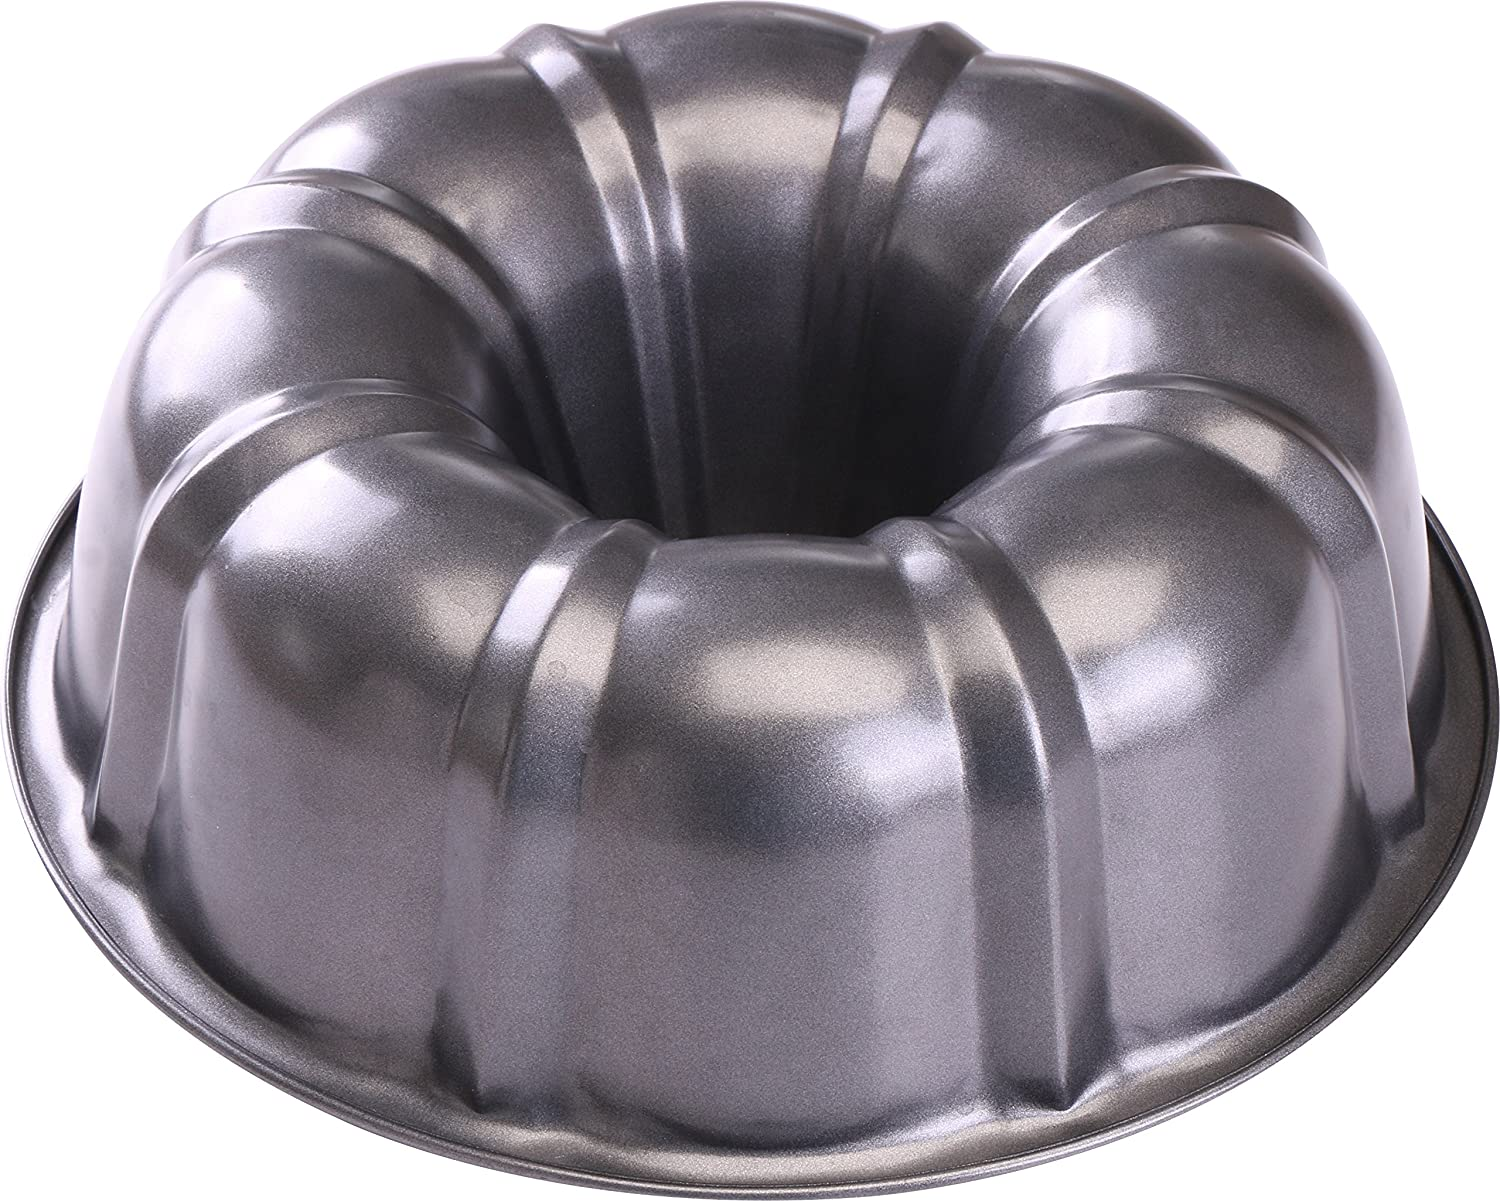 Utopia Kitchen Professional Baking Bundt Pan - High Carbon Steel Material - Non-Stick Design with Carefully Crafted Edges – Easy to Use and Clean UK0298